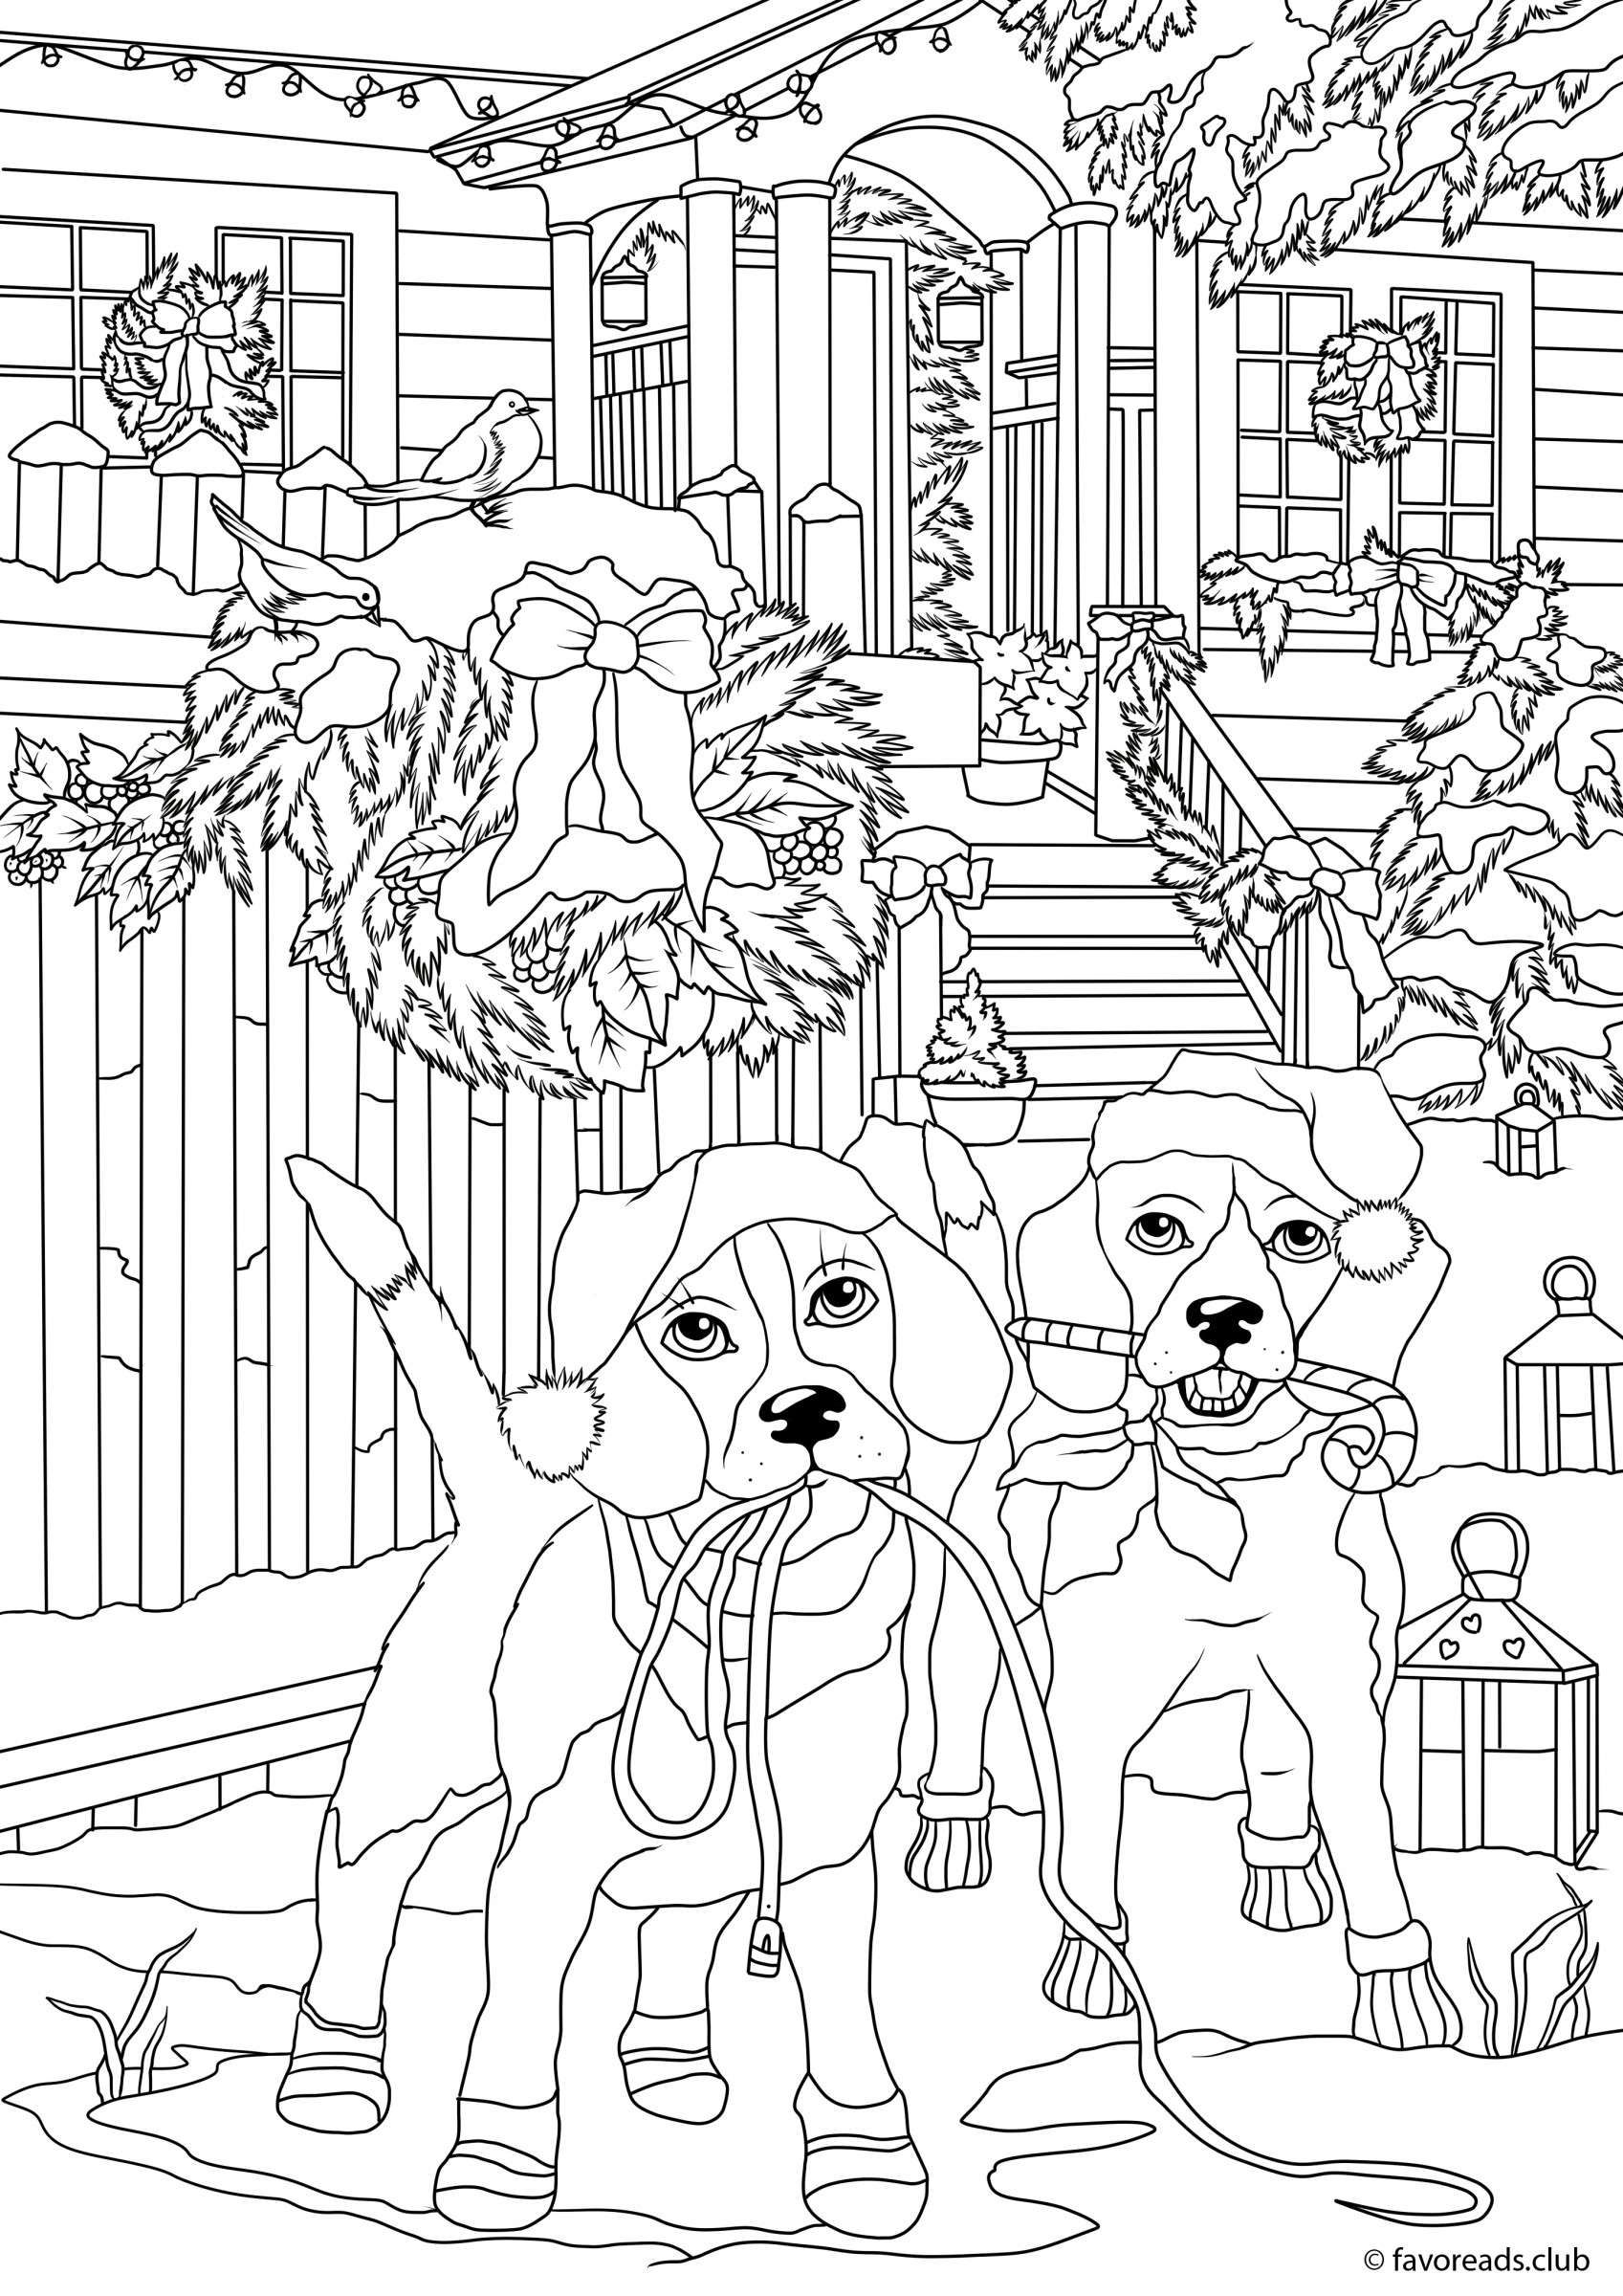 Favoreads Winter Dogs 1413 Jpg 1697 2400 Free Christmas Coloring Pages Christmas Coloring Pages Printable Christmas Coloring Pages